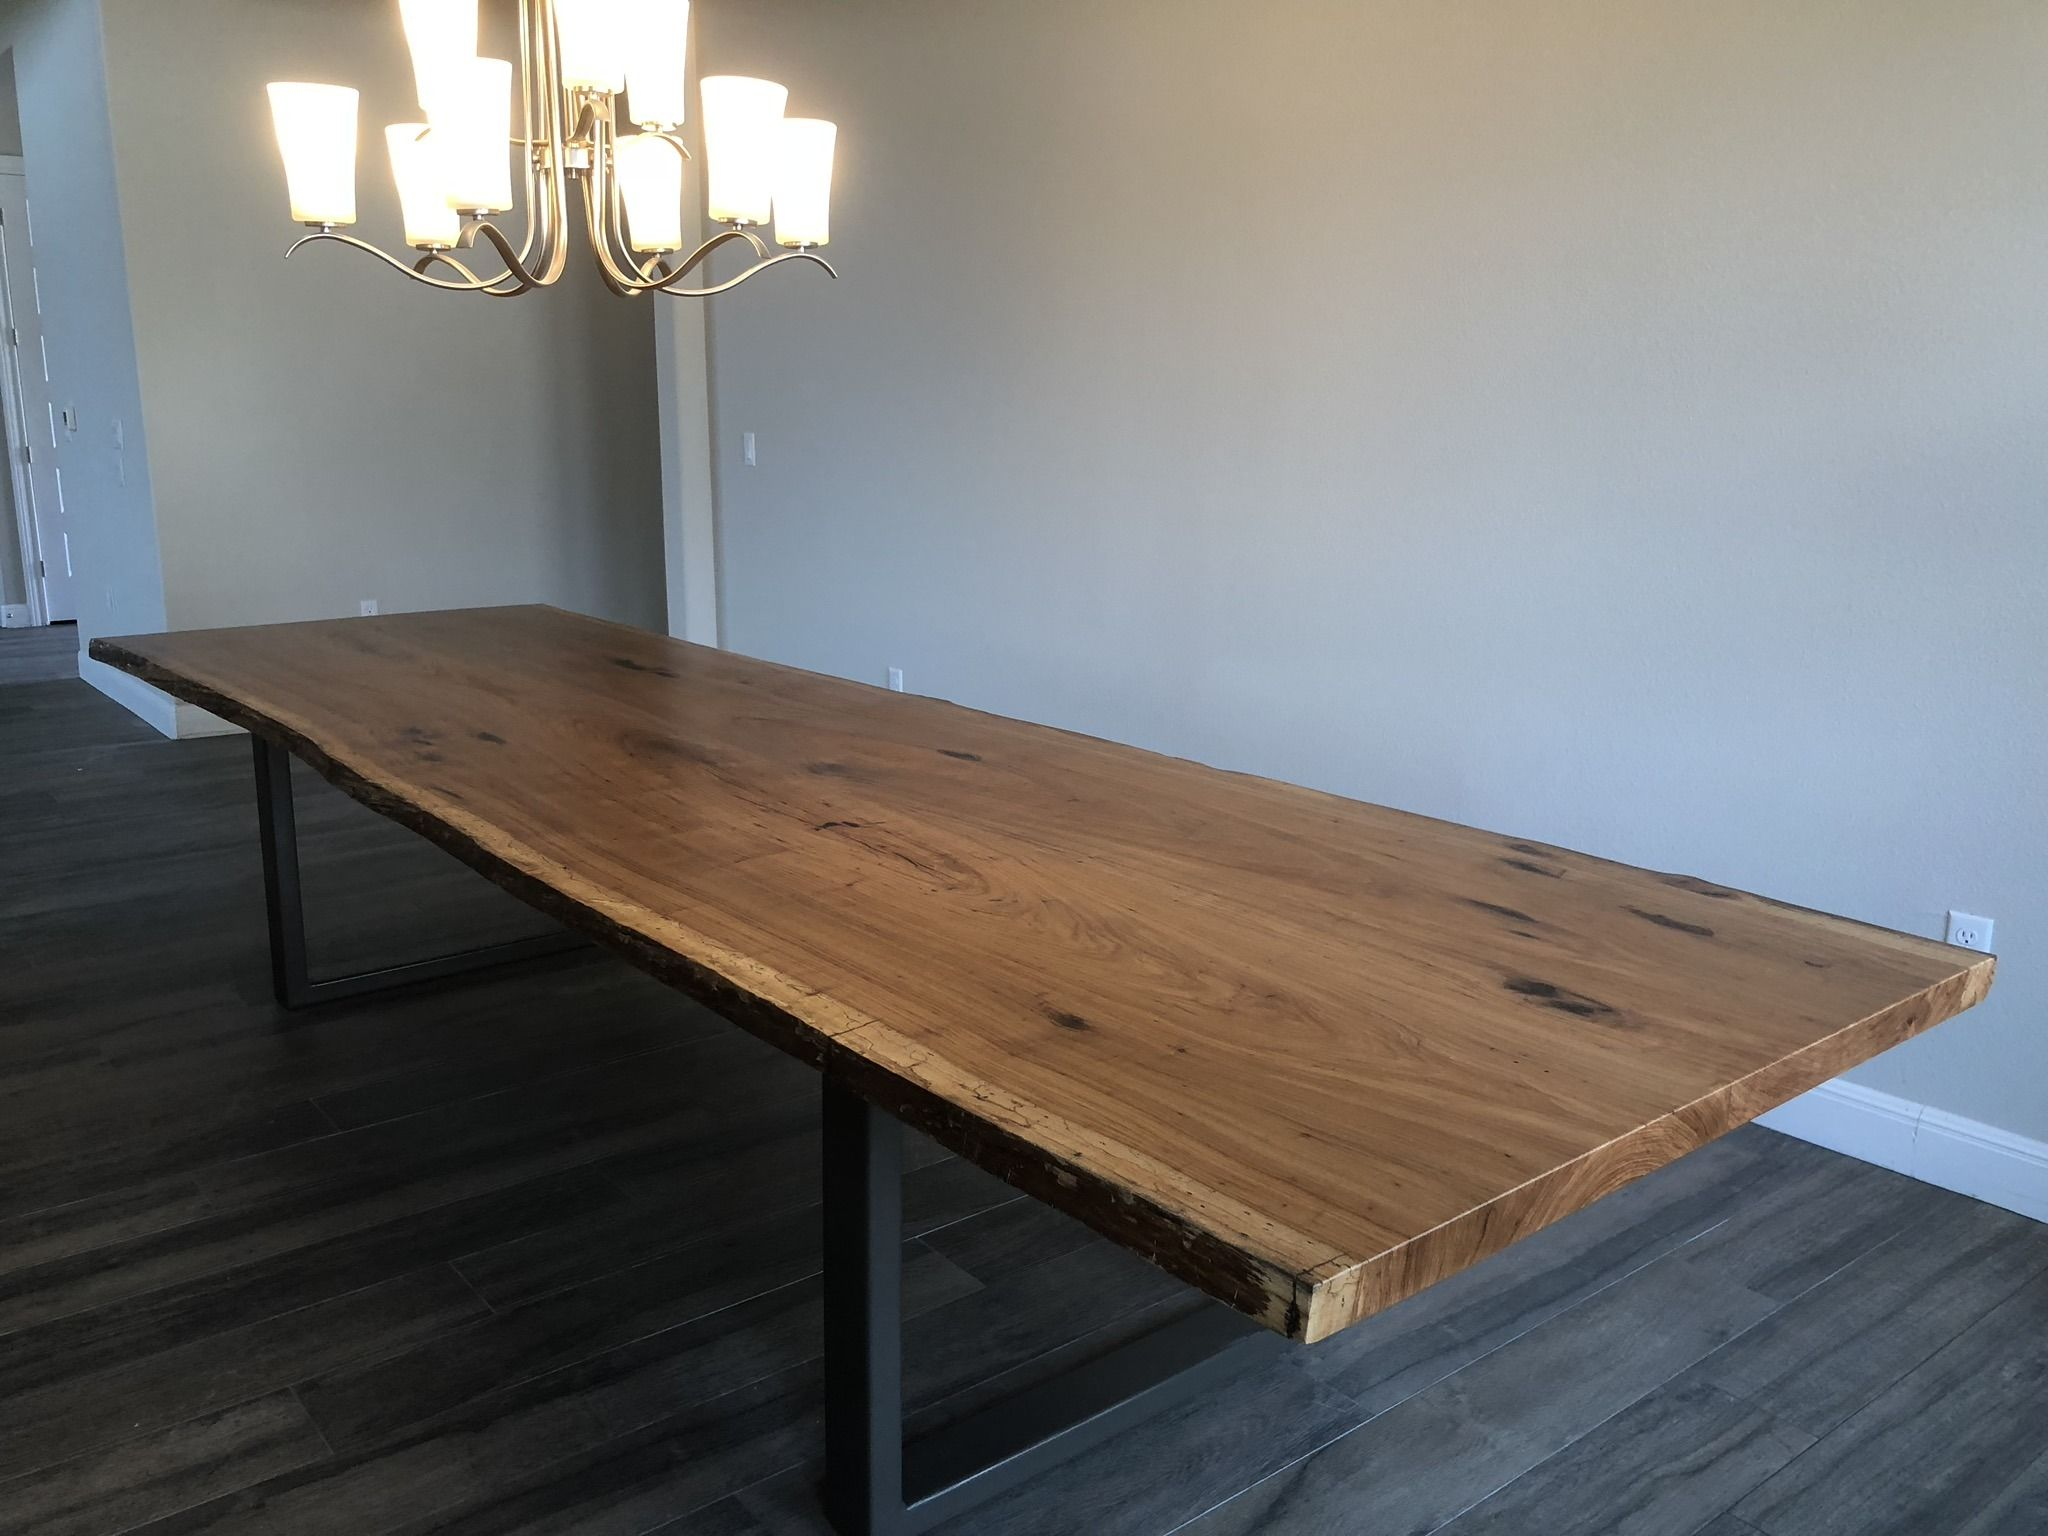 12 Pecan Slab Dining Table With Metal Legs Slab Dining Tables